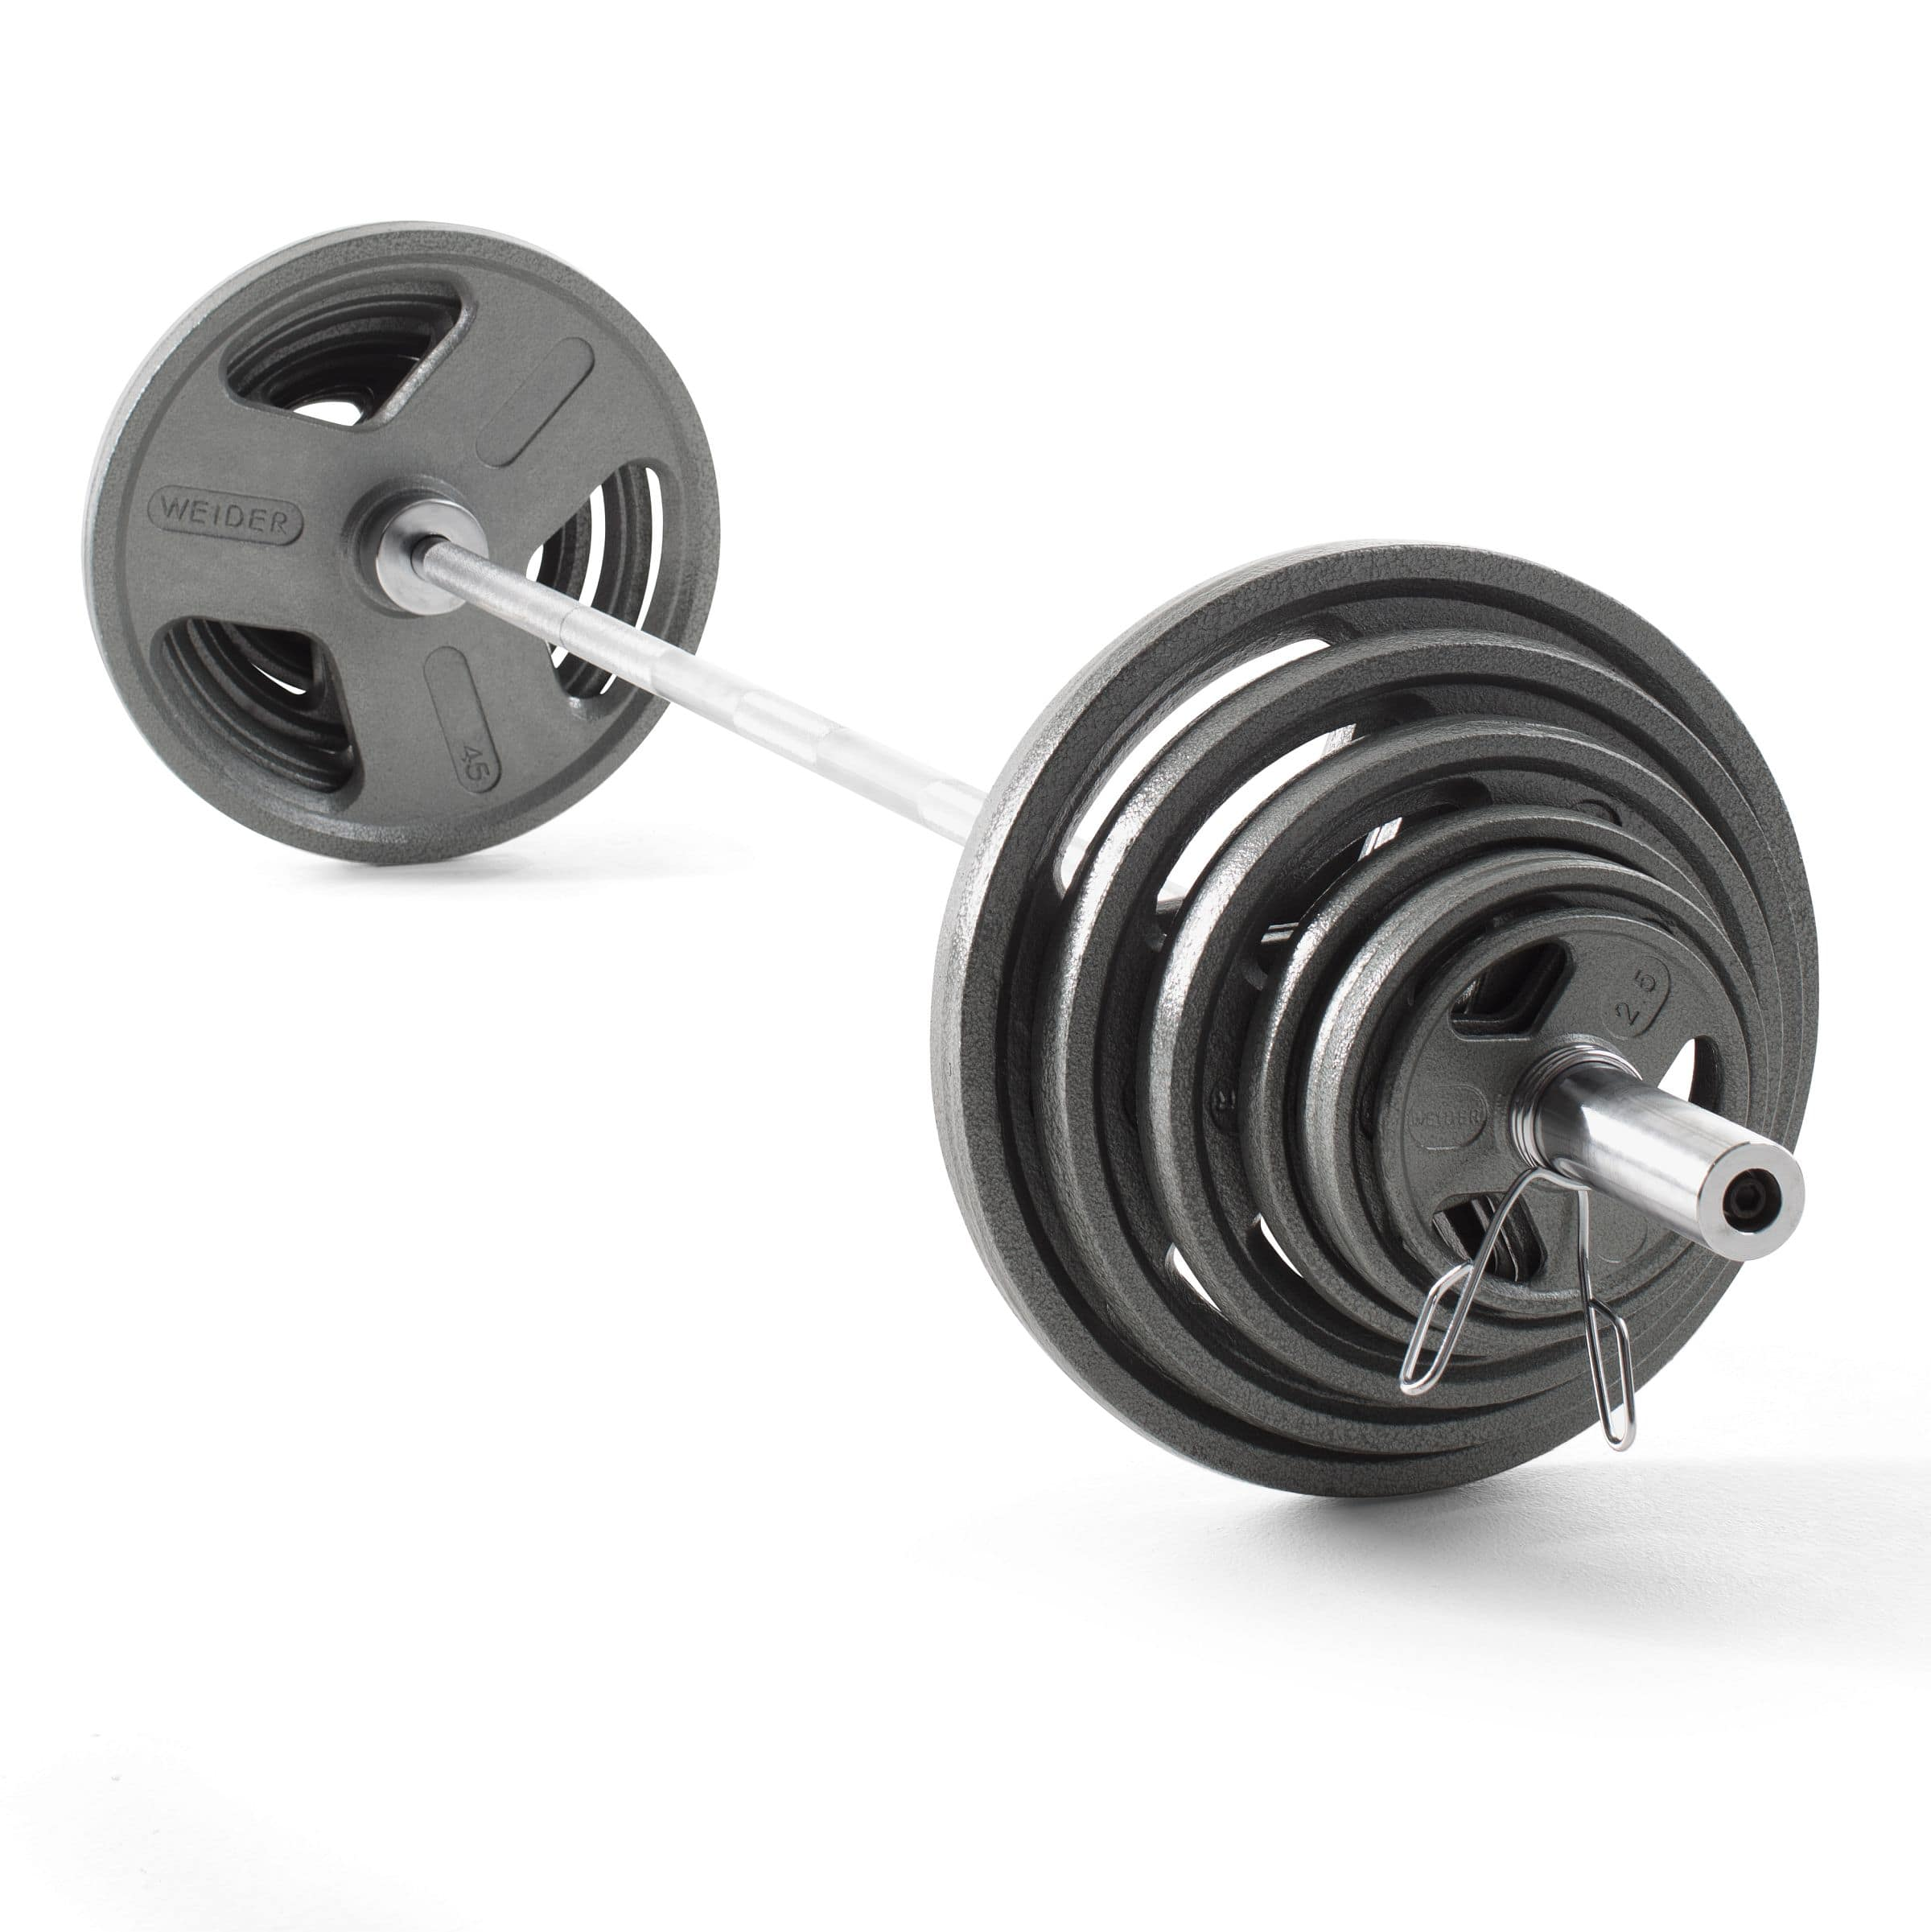 Sears - Weider 300 LB Olympic Weight Set - $179.99 + Free Store PU